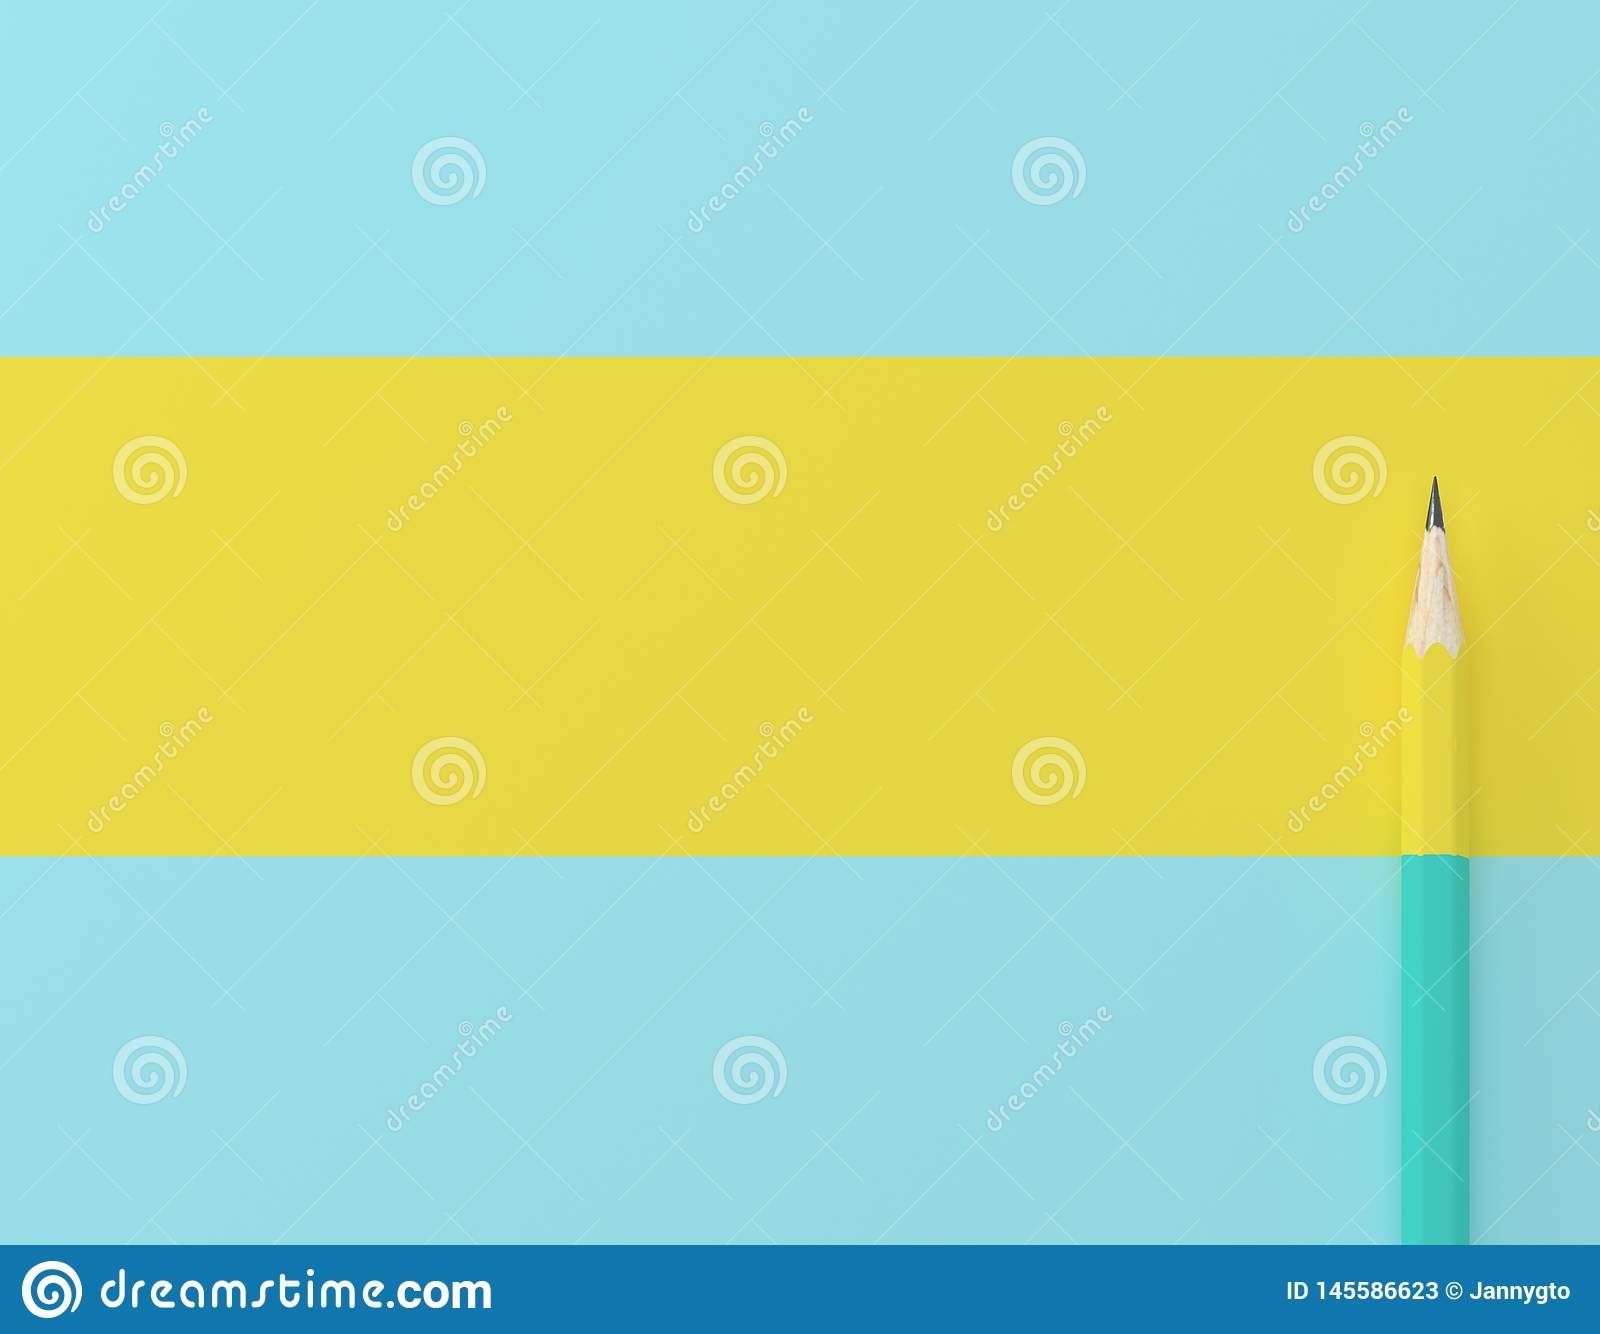 Creative idea layout made of yellow pencil contrast blue pastel background. Minimal template with copy space by top view.